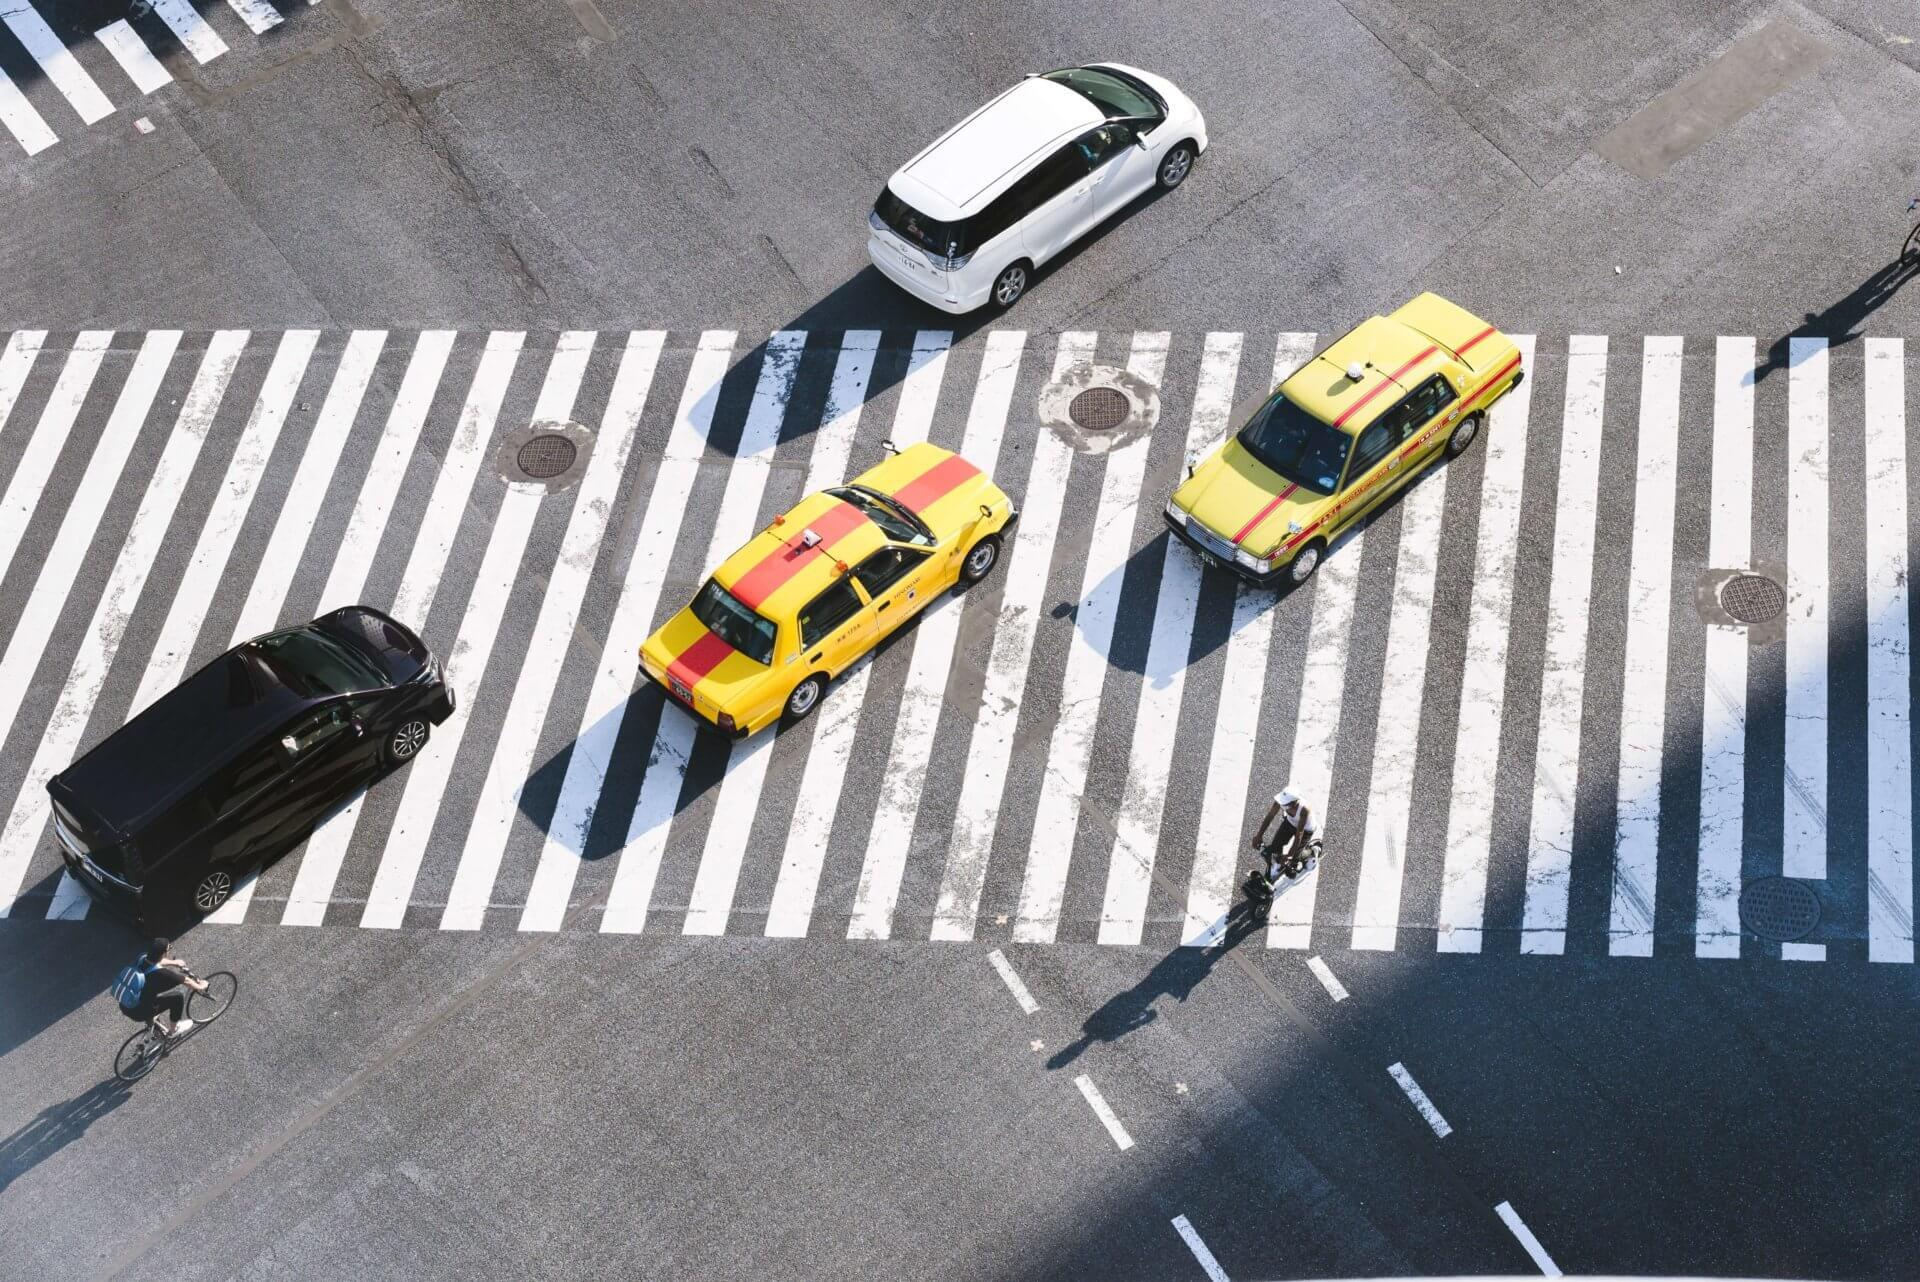 Pedestrian Safety: Are your Pedestrian Crossings Safe for Visually-Impaired and Blind People?